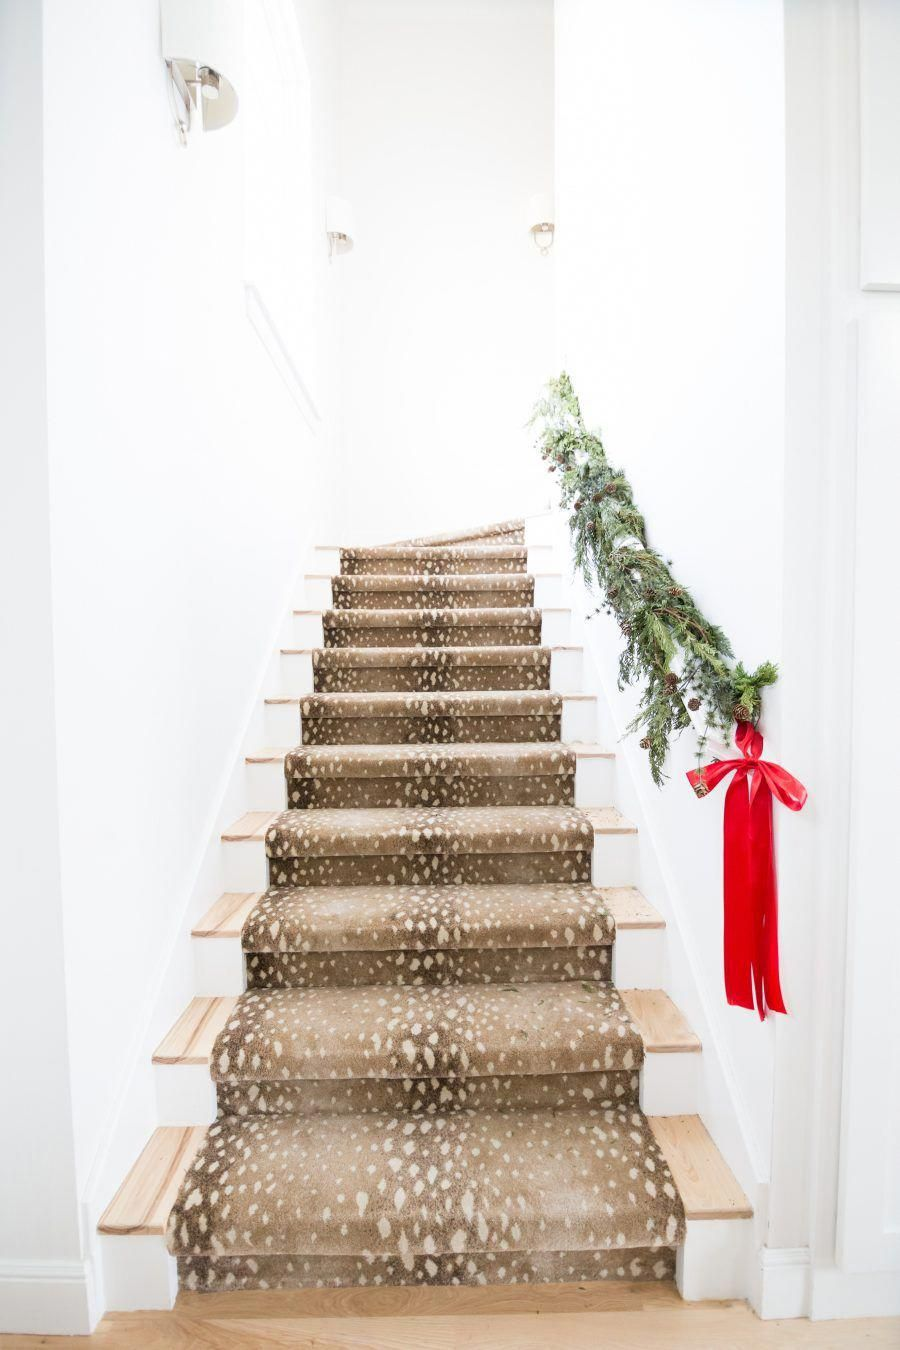 How Much Do Carpet Runners Cost StairStepCarpetRunners id